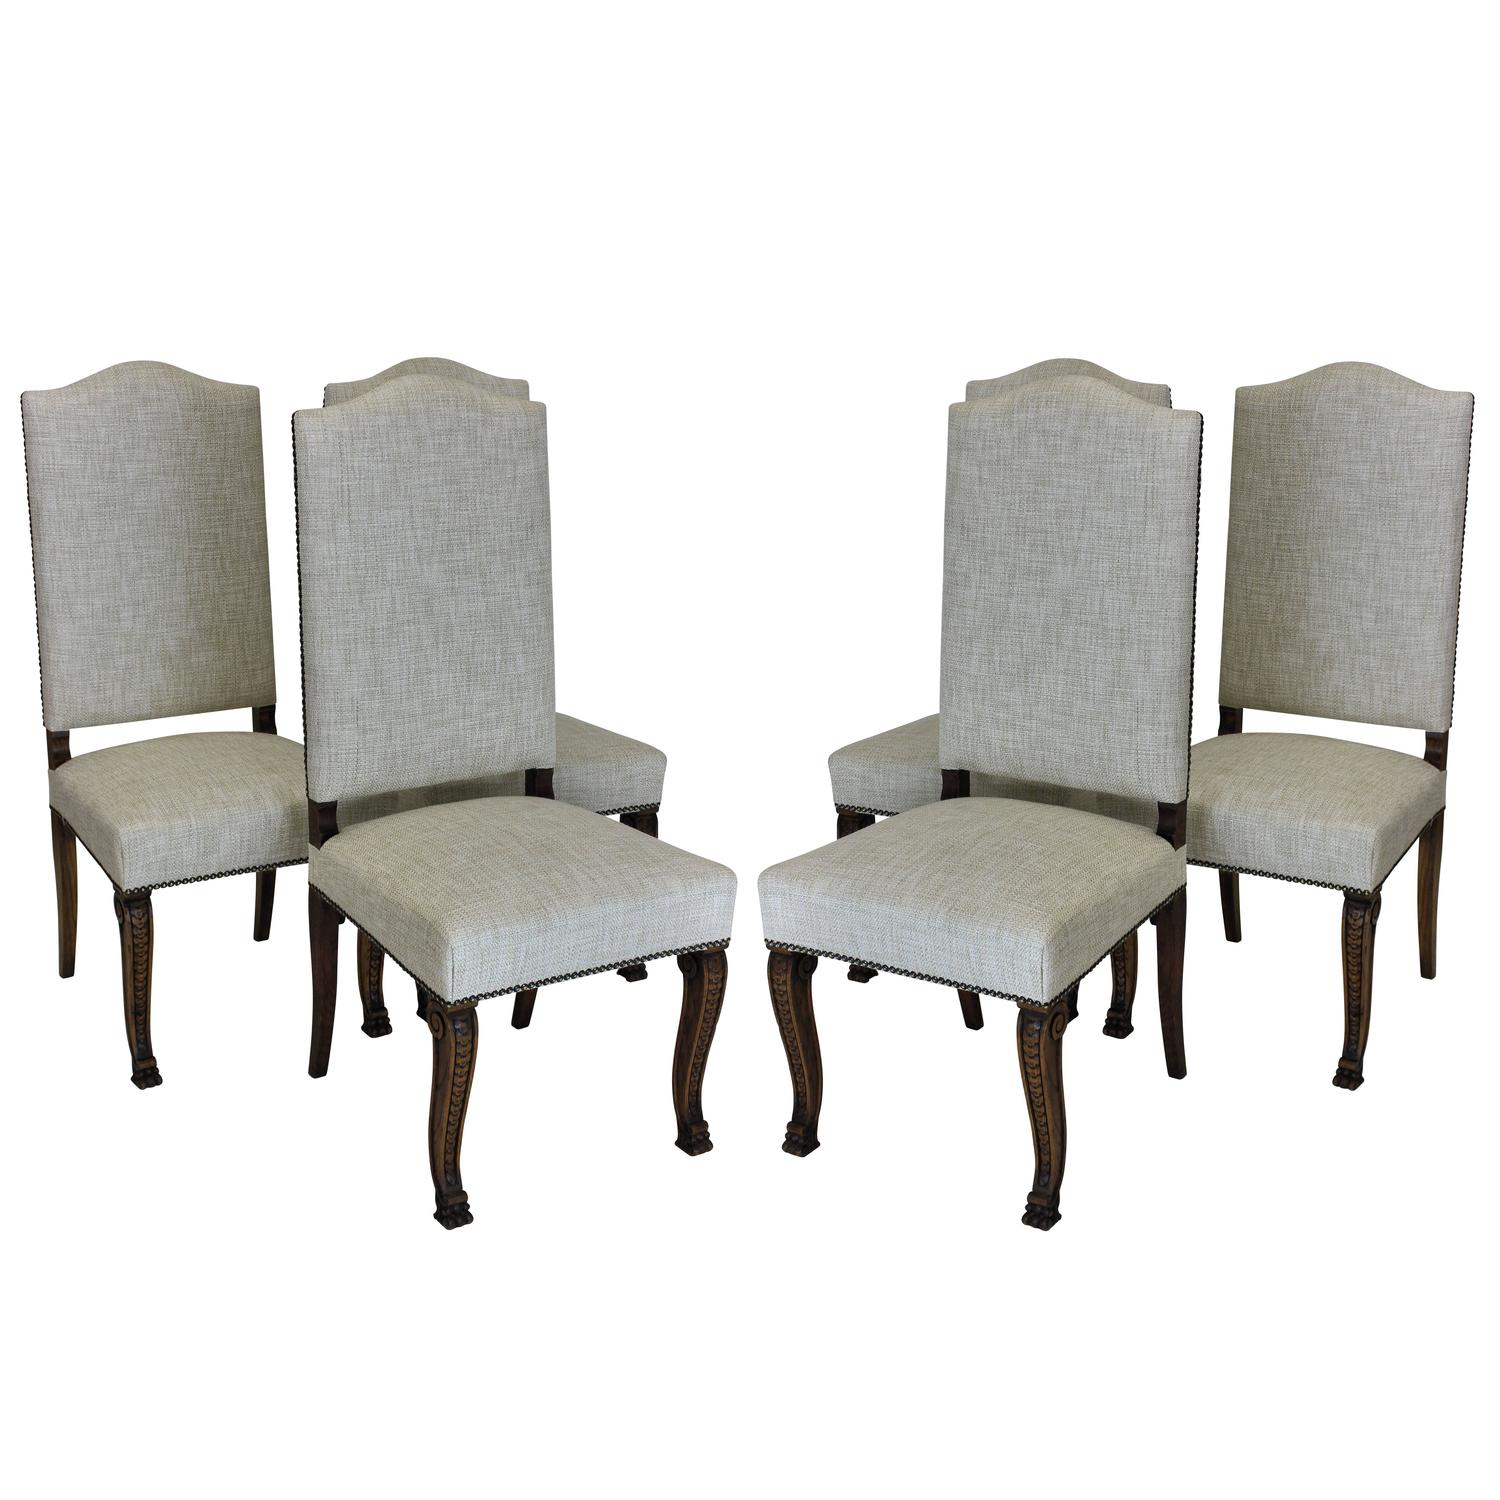 Six French High Back Dining Chairs For Sale At 1stdibs